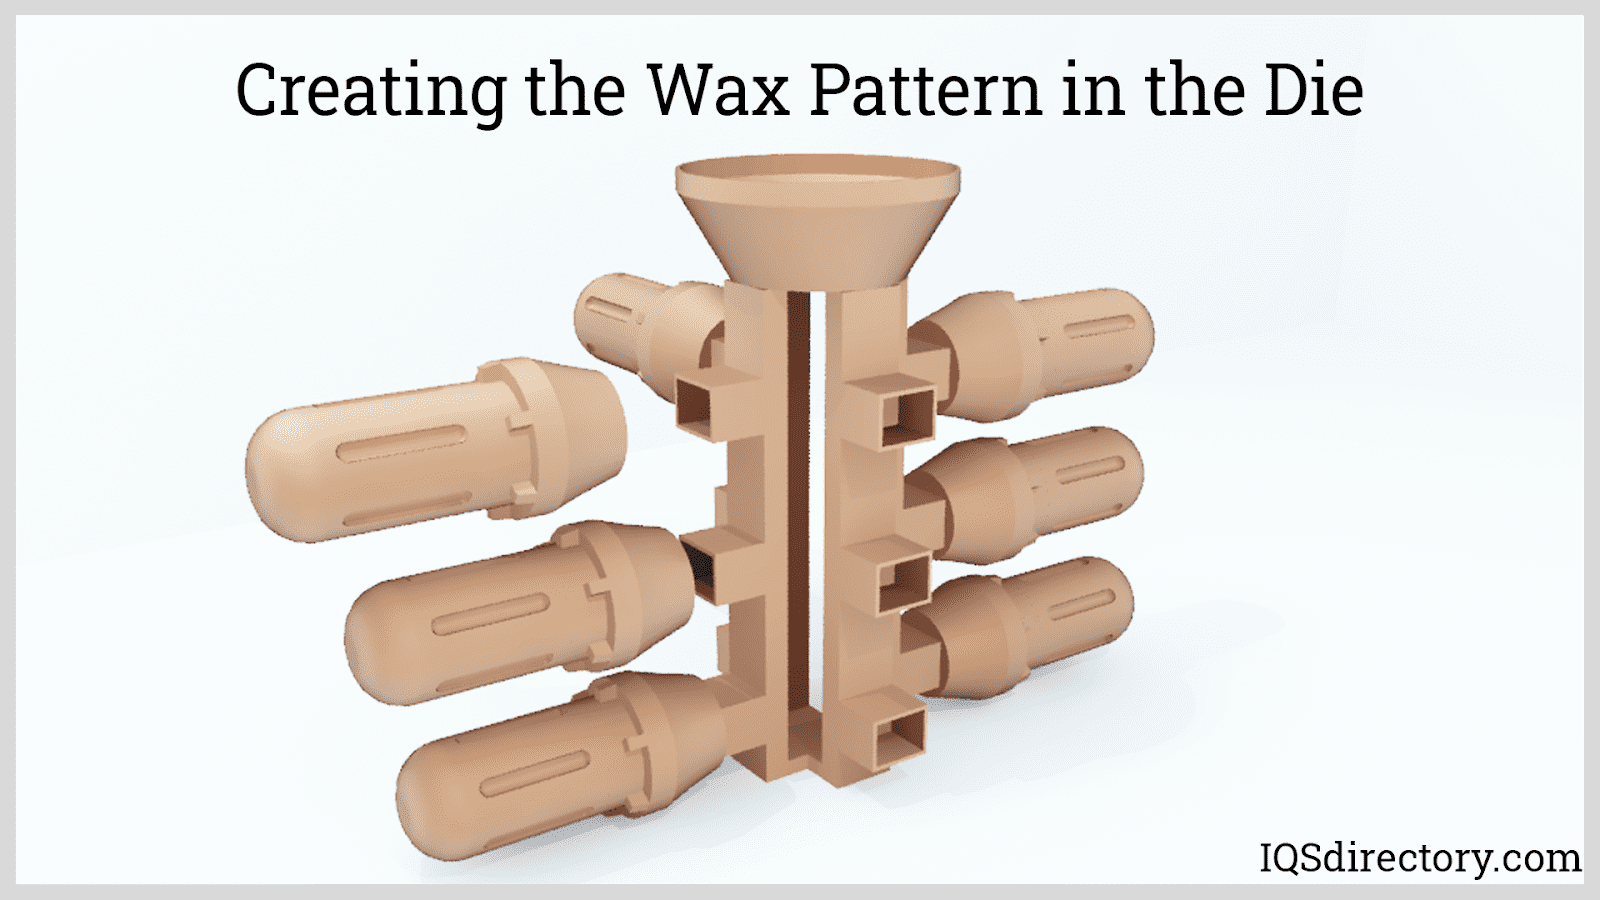 Creating the Wax Pattern in the Die